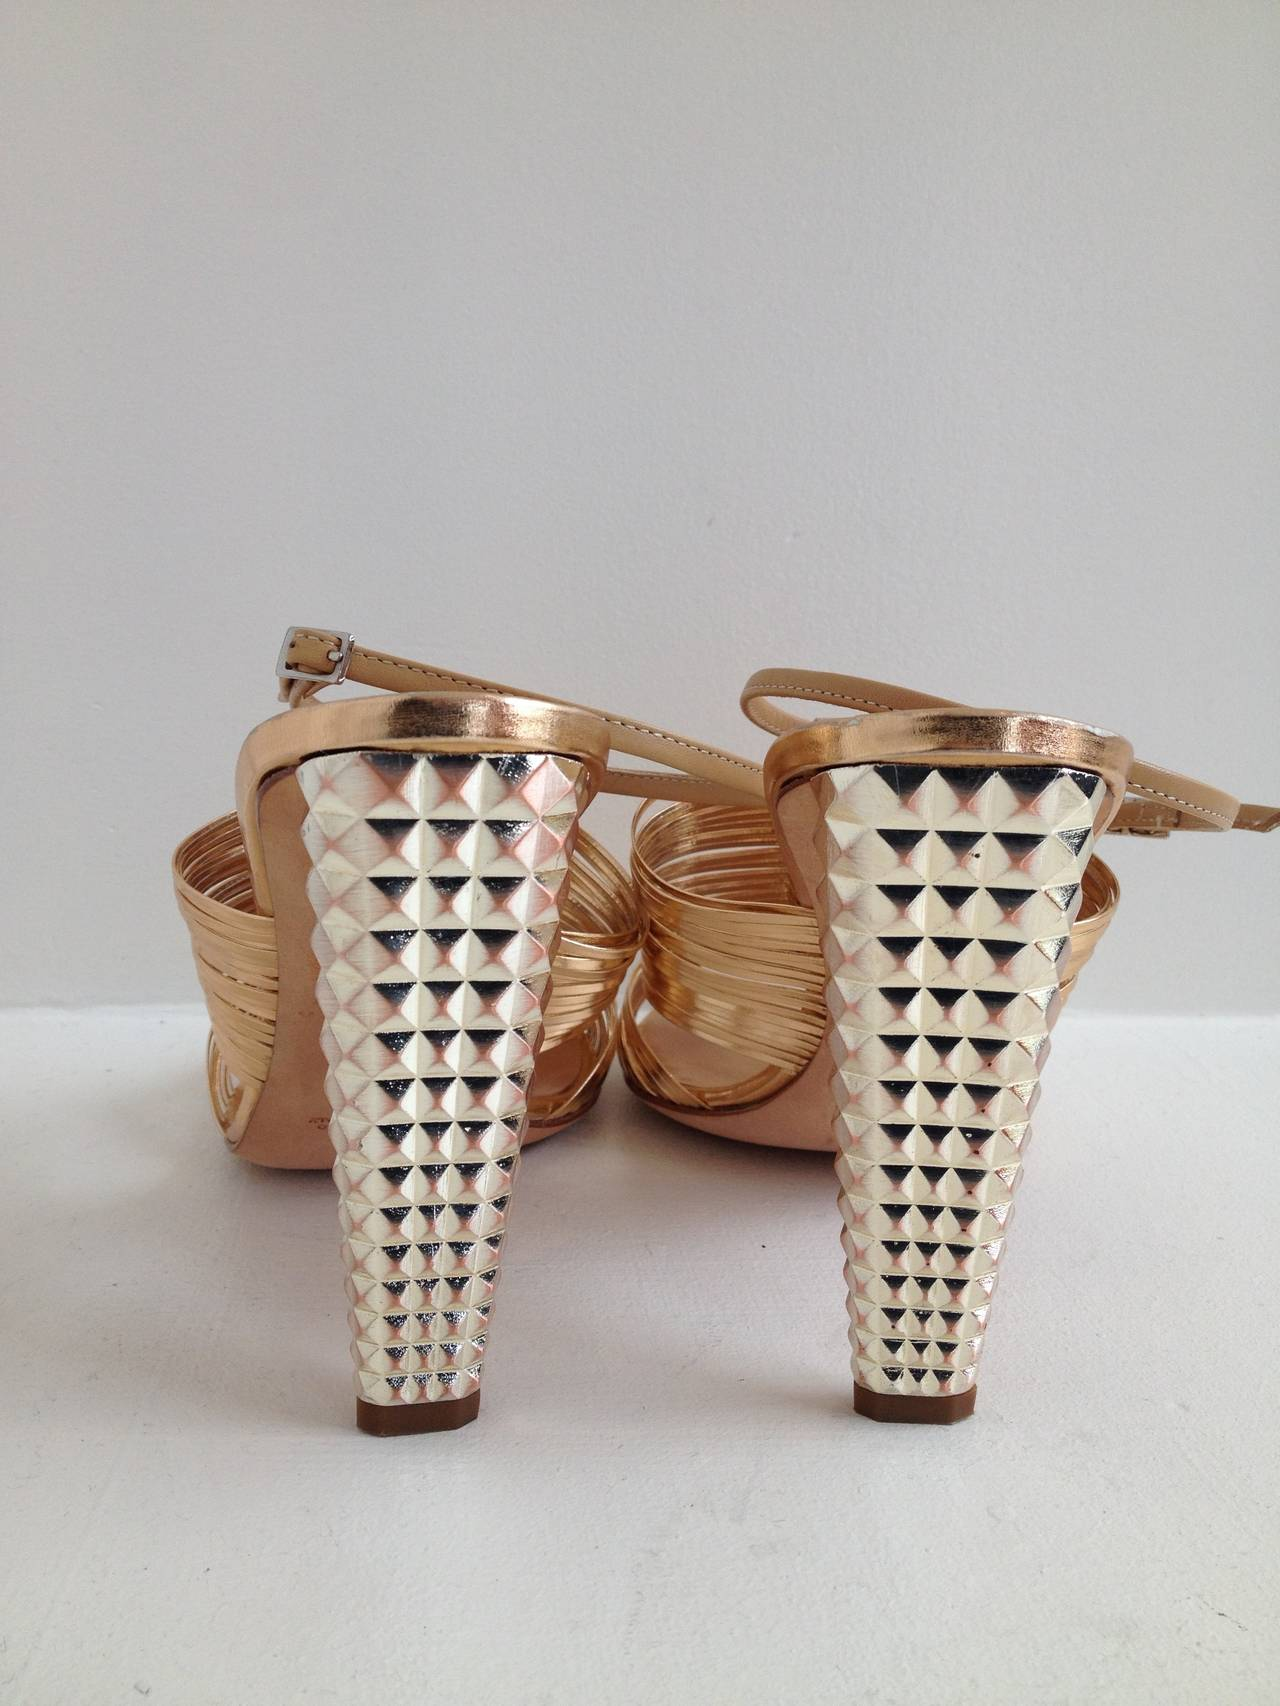 Giuseppe Zanotti Rose Gold Sandals with Studded Heel In New Never_worn Condition For Sale In San Francisco, CA